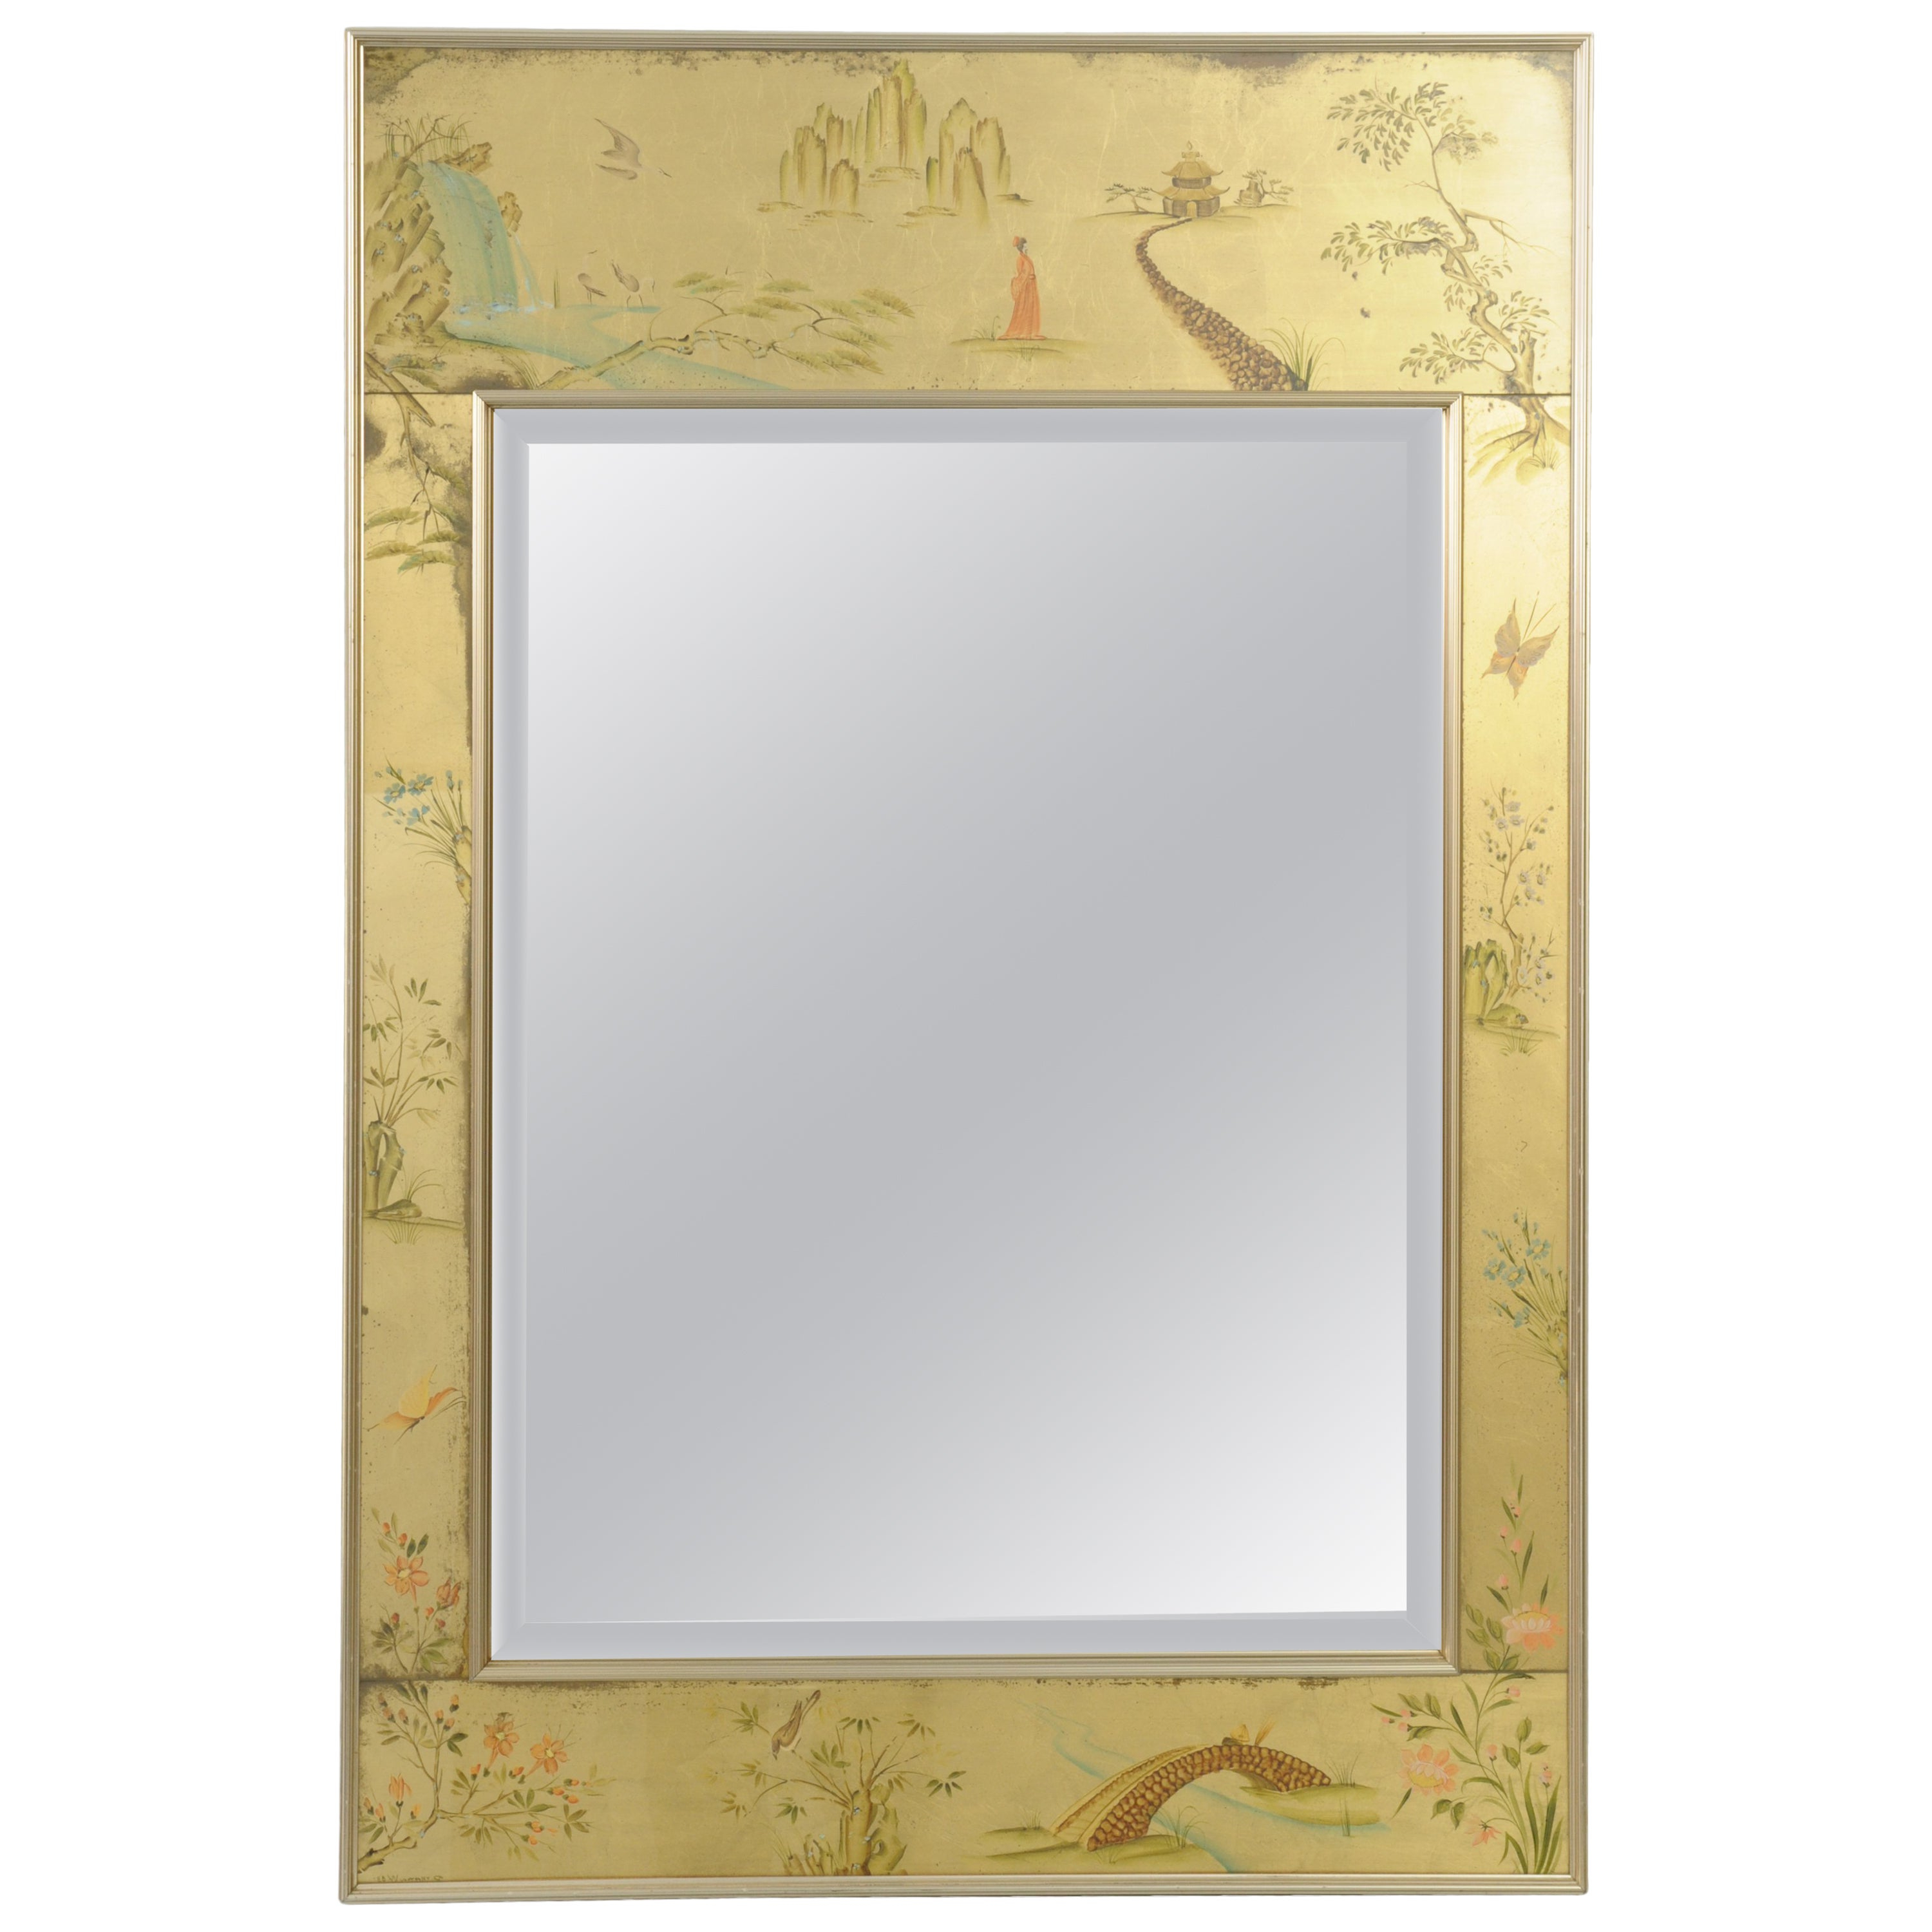 Labarge Chinoiserie Style Gold Églomisé Wall Mirror Reverse Painted Asian Signed With Regard To Widely Used Asian Inspired Wall Mirrors (View 3 of 20)